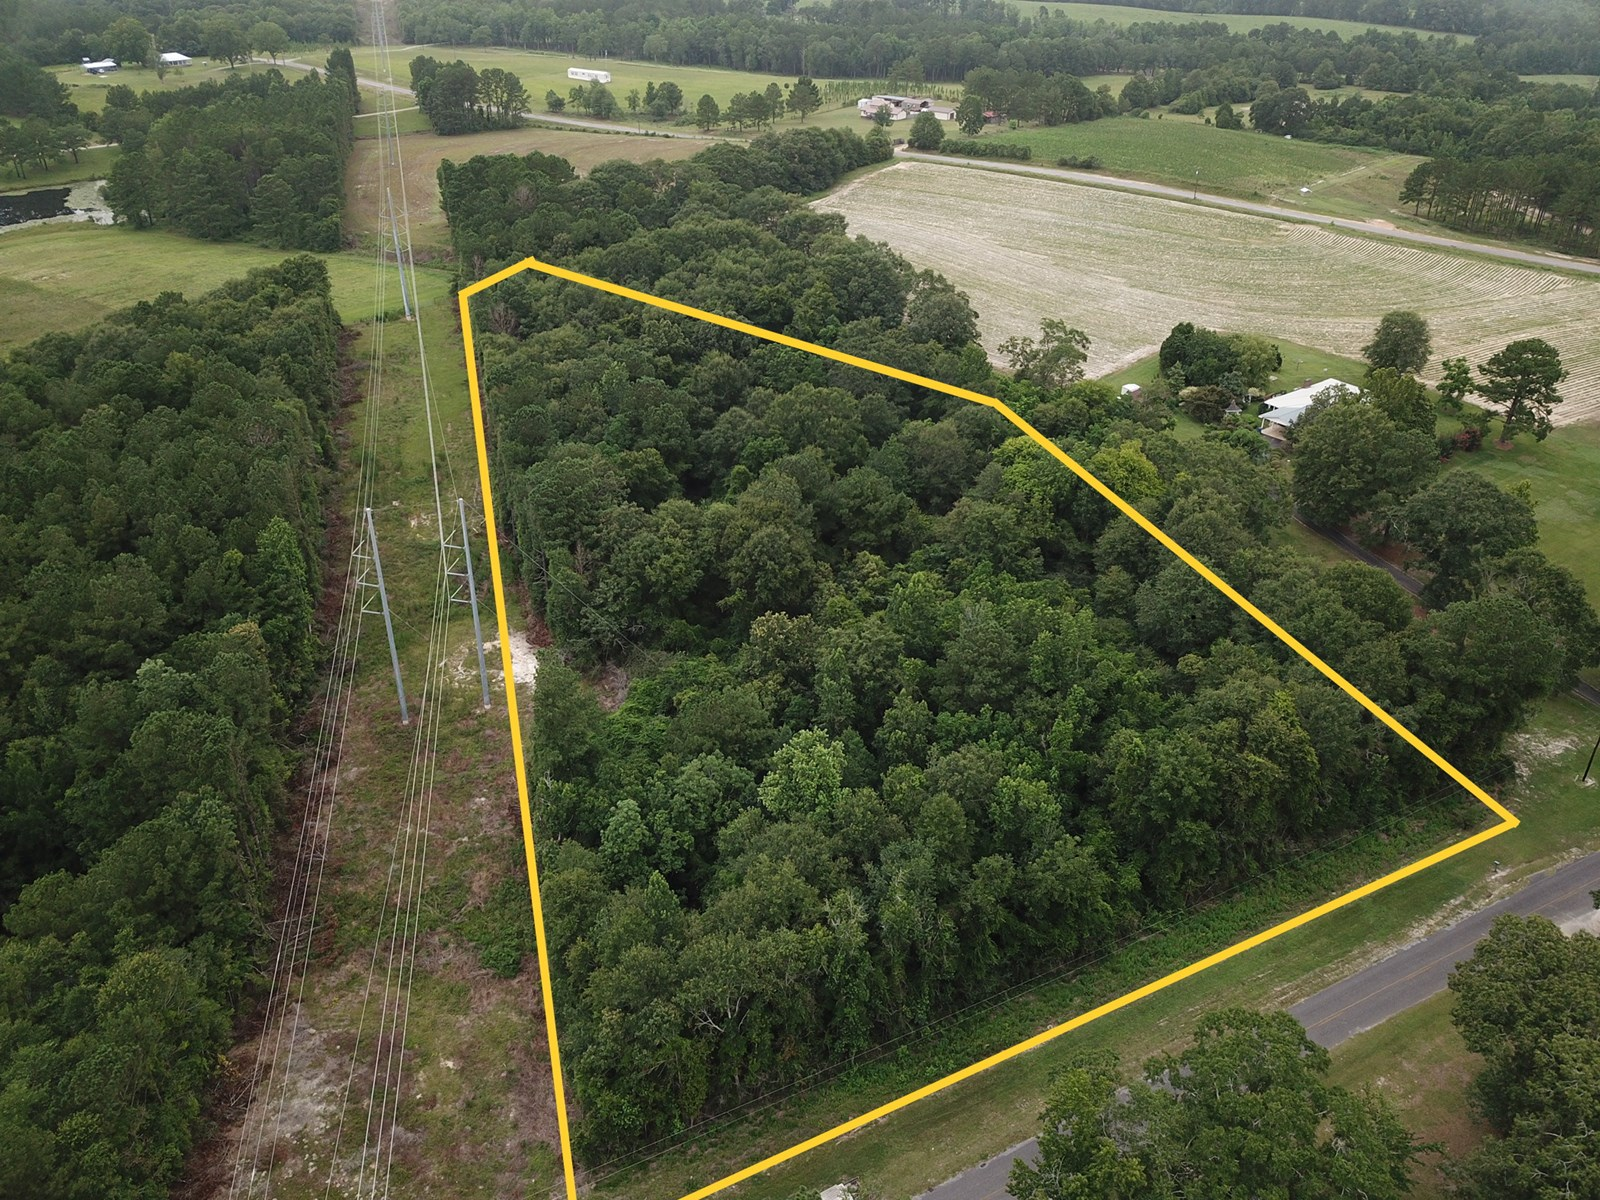 Land for sale Andalusia, Alabama - Wiggins Road